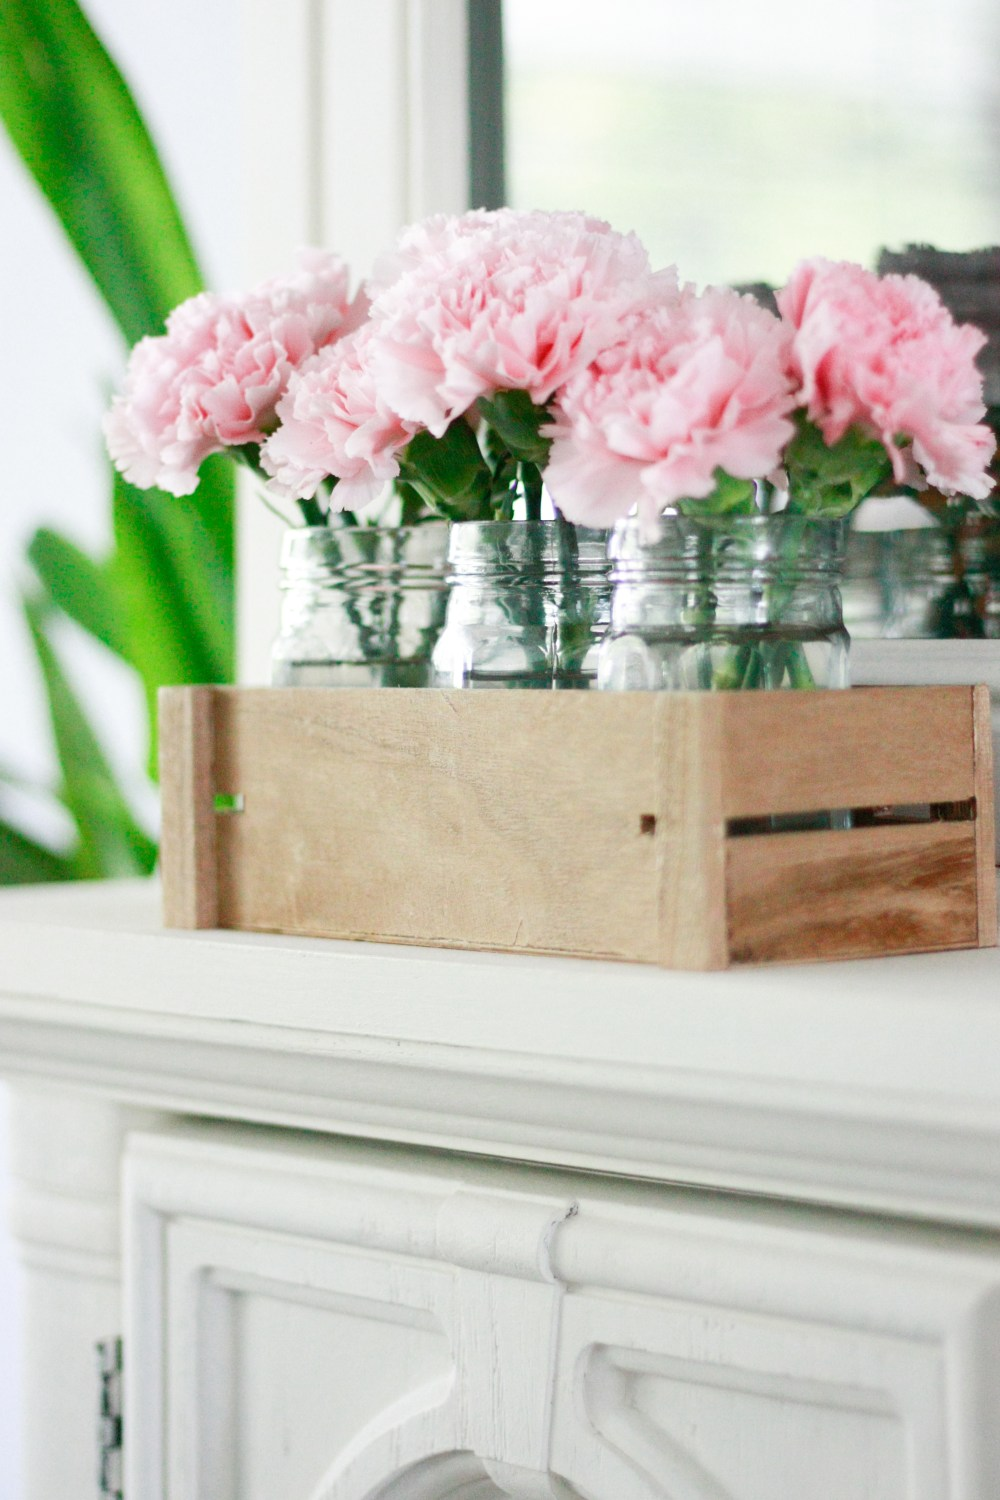 How To Decorate With Plants - easy ways to incorporate plants into your home decor!